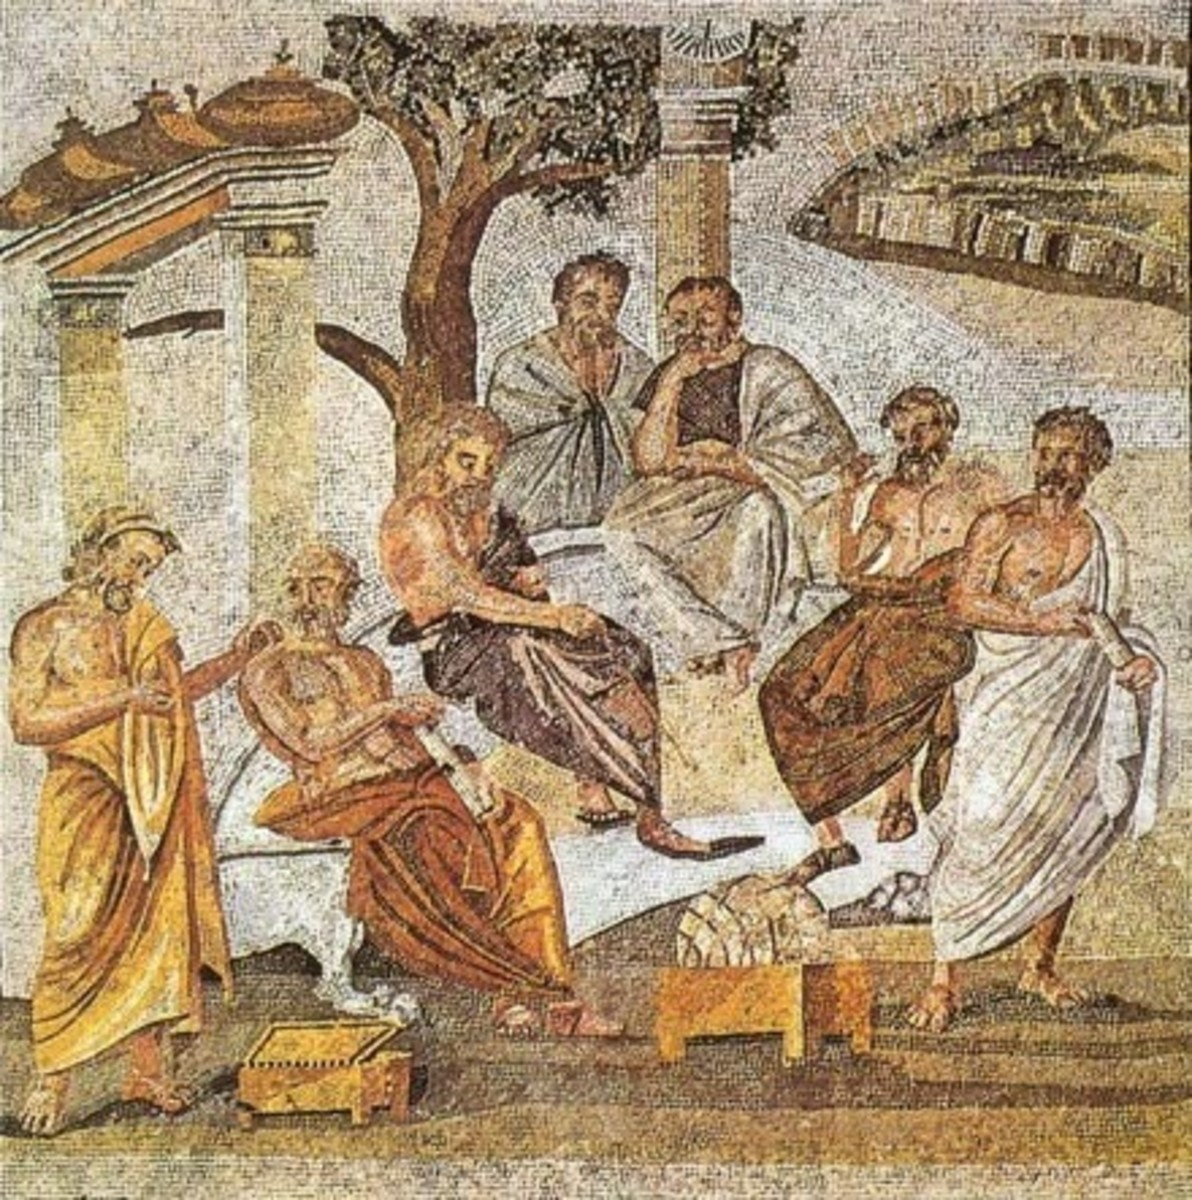 First century BCE Roman mosaic of Plato's Academy mosaic. The mosaic has been interpreted as having the central figure, Plato, pointing with a stick at the globe.